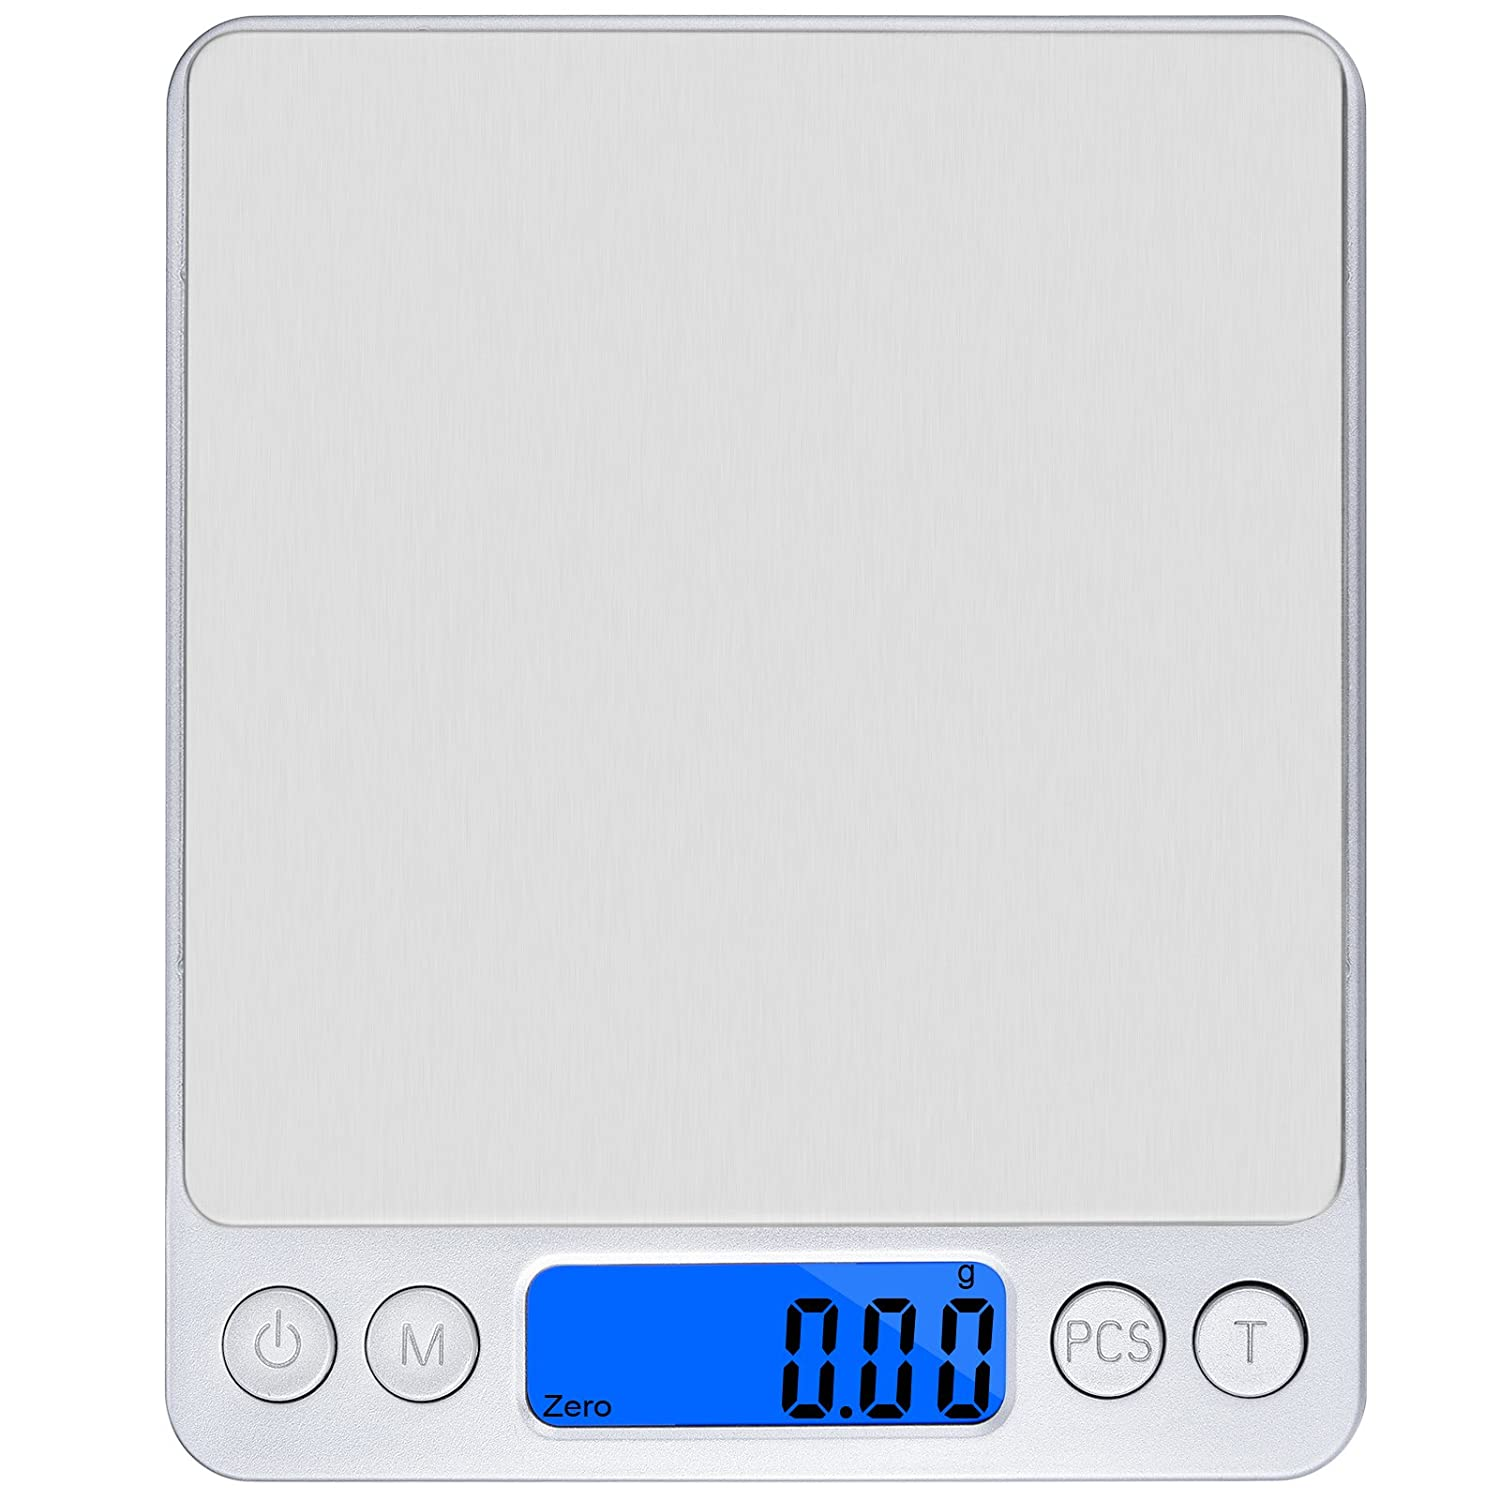 OLRIKE 500g x 0.01g Precison Kitchen Scale Smart Weigh Trae Funtion Pro Digital Kitchen Scales with LCD Blue Backlight Used for Weigh Foods, Powder, Fine Items, Jewellery Etc DMS01